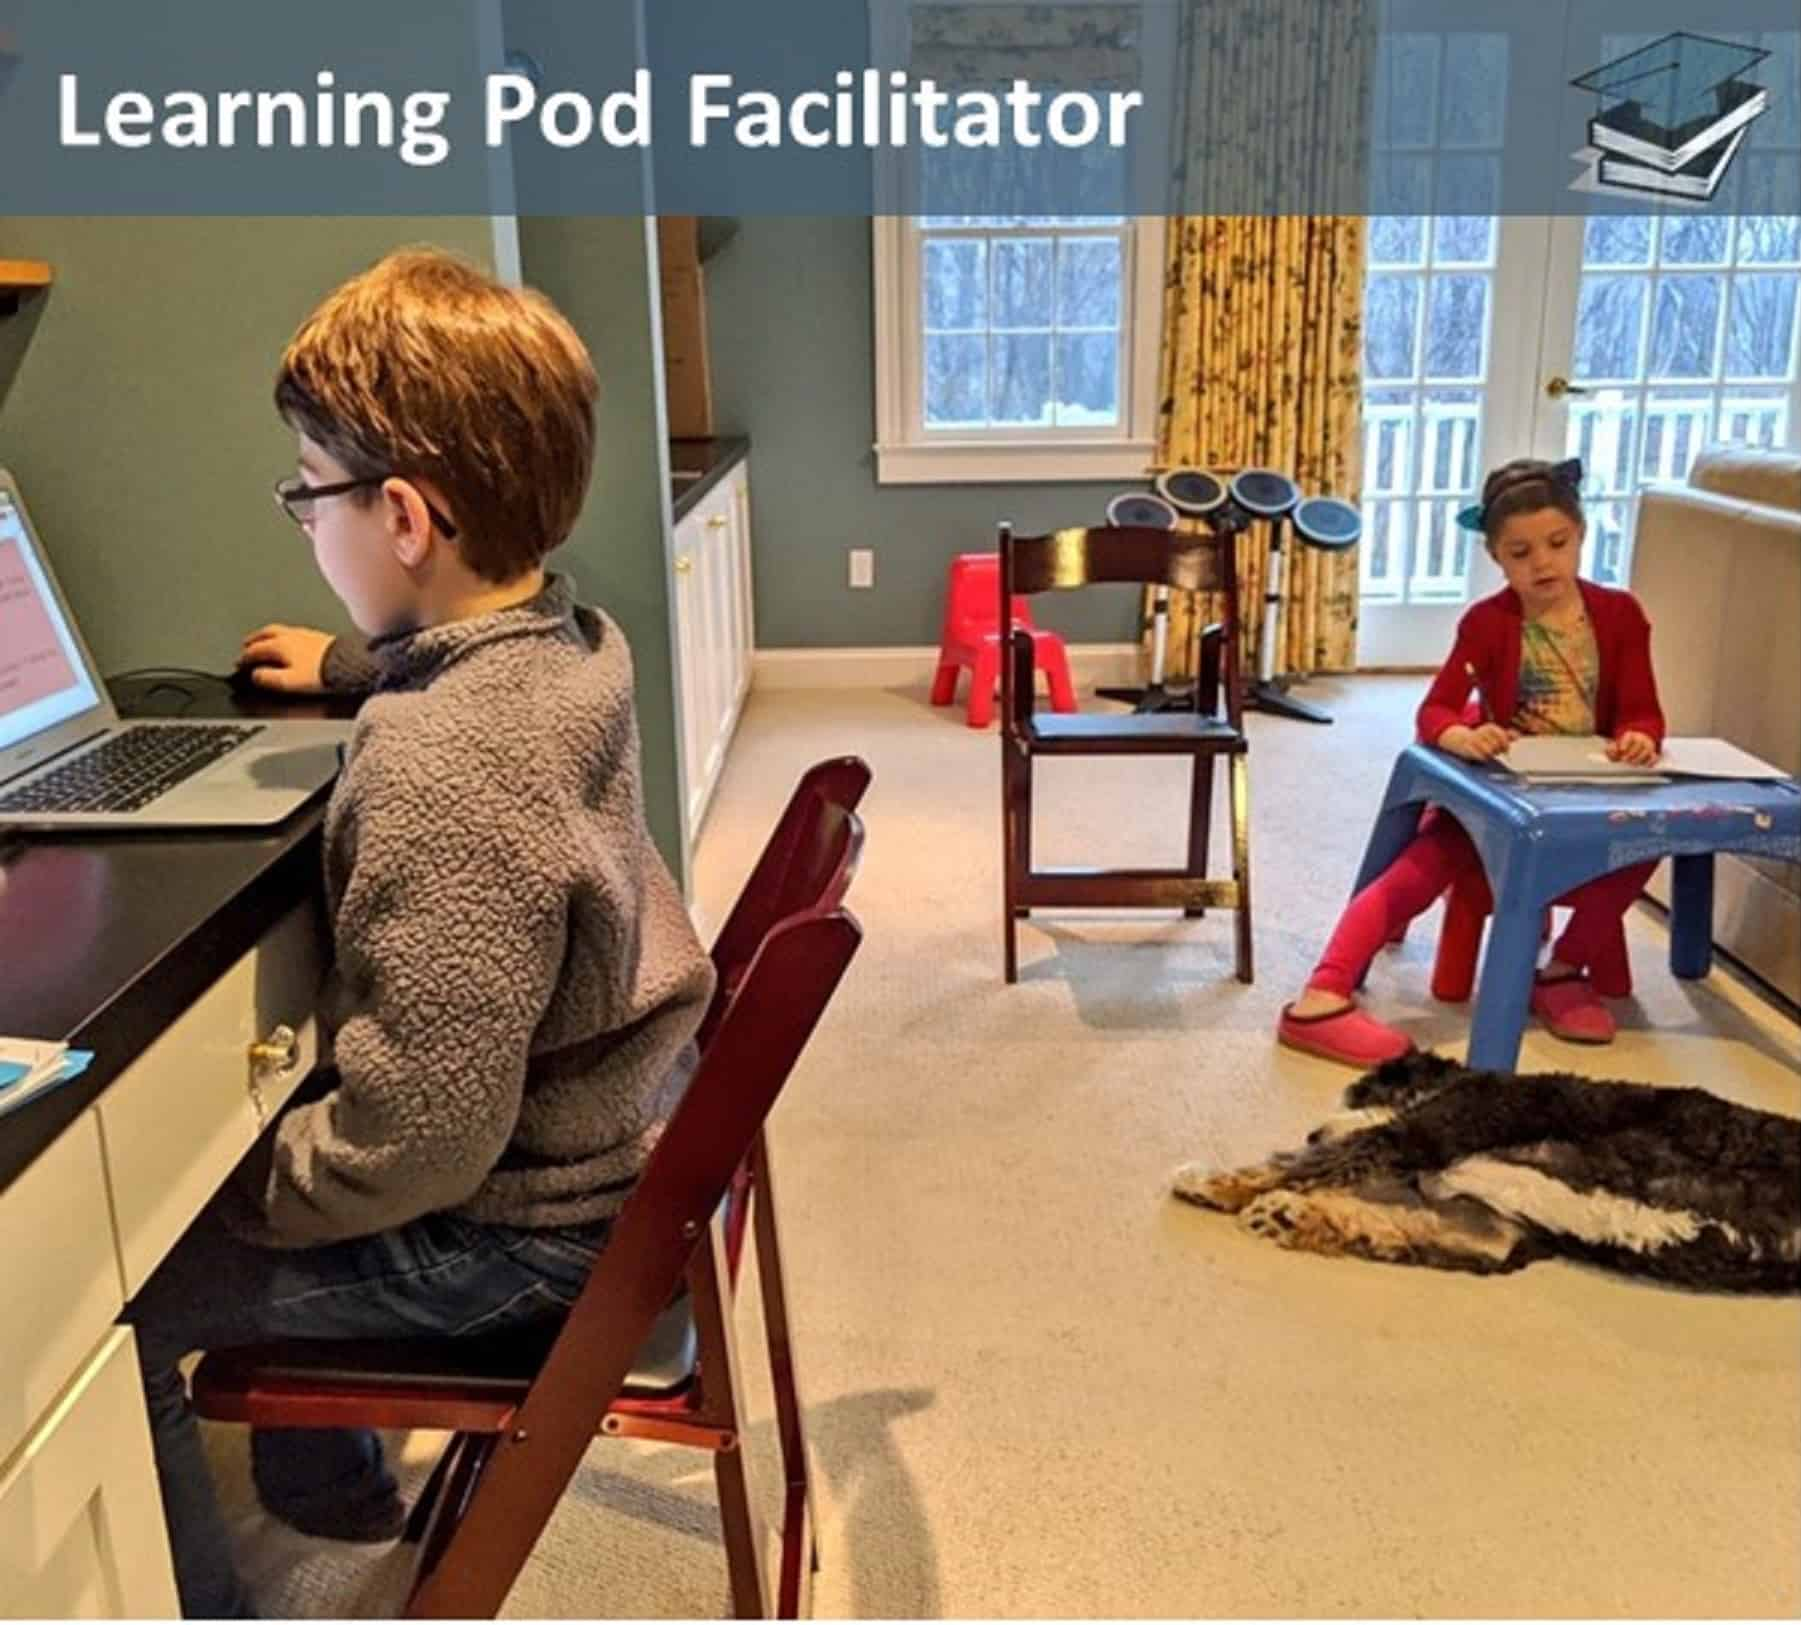 learning pod classroom in a home